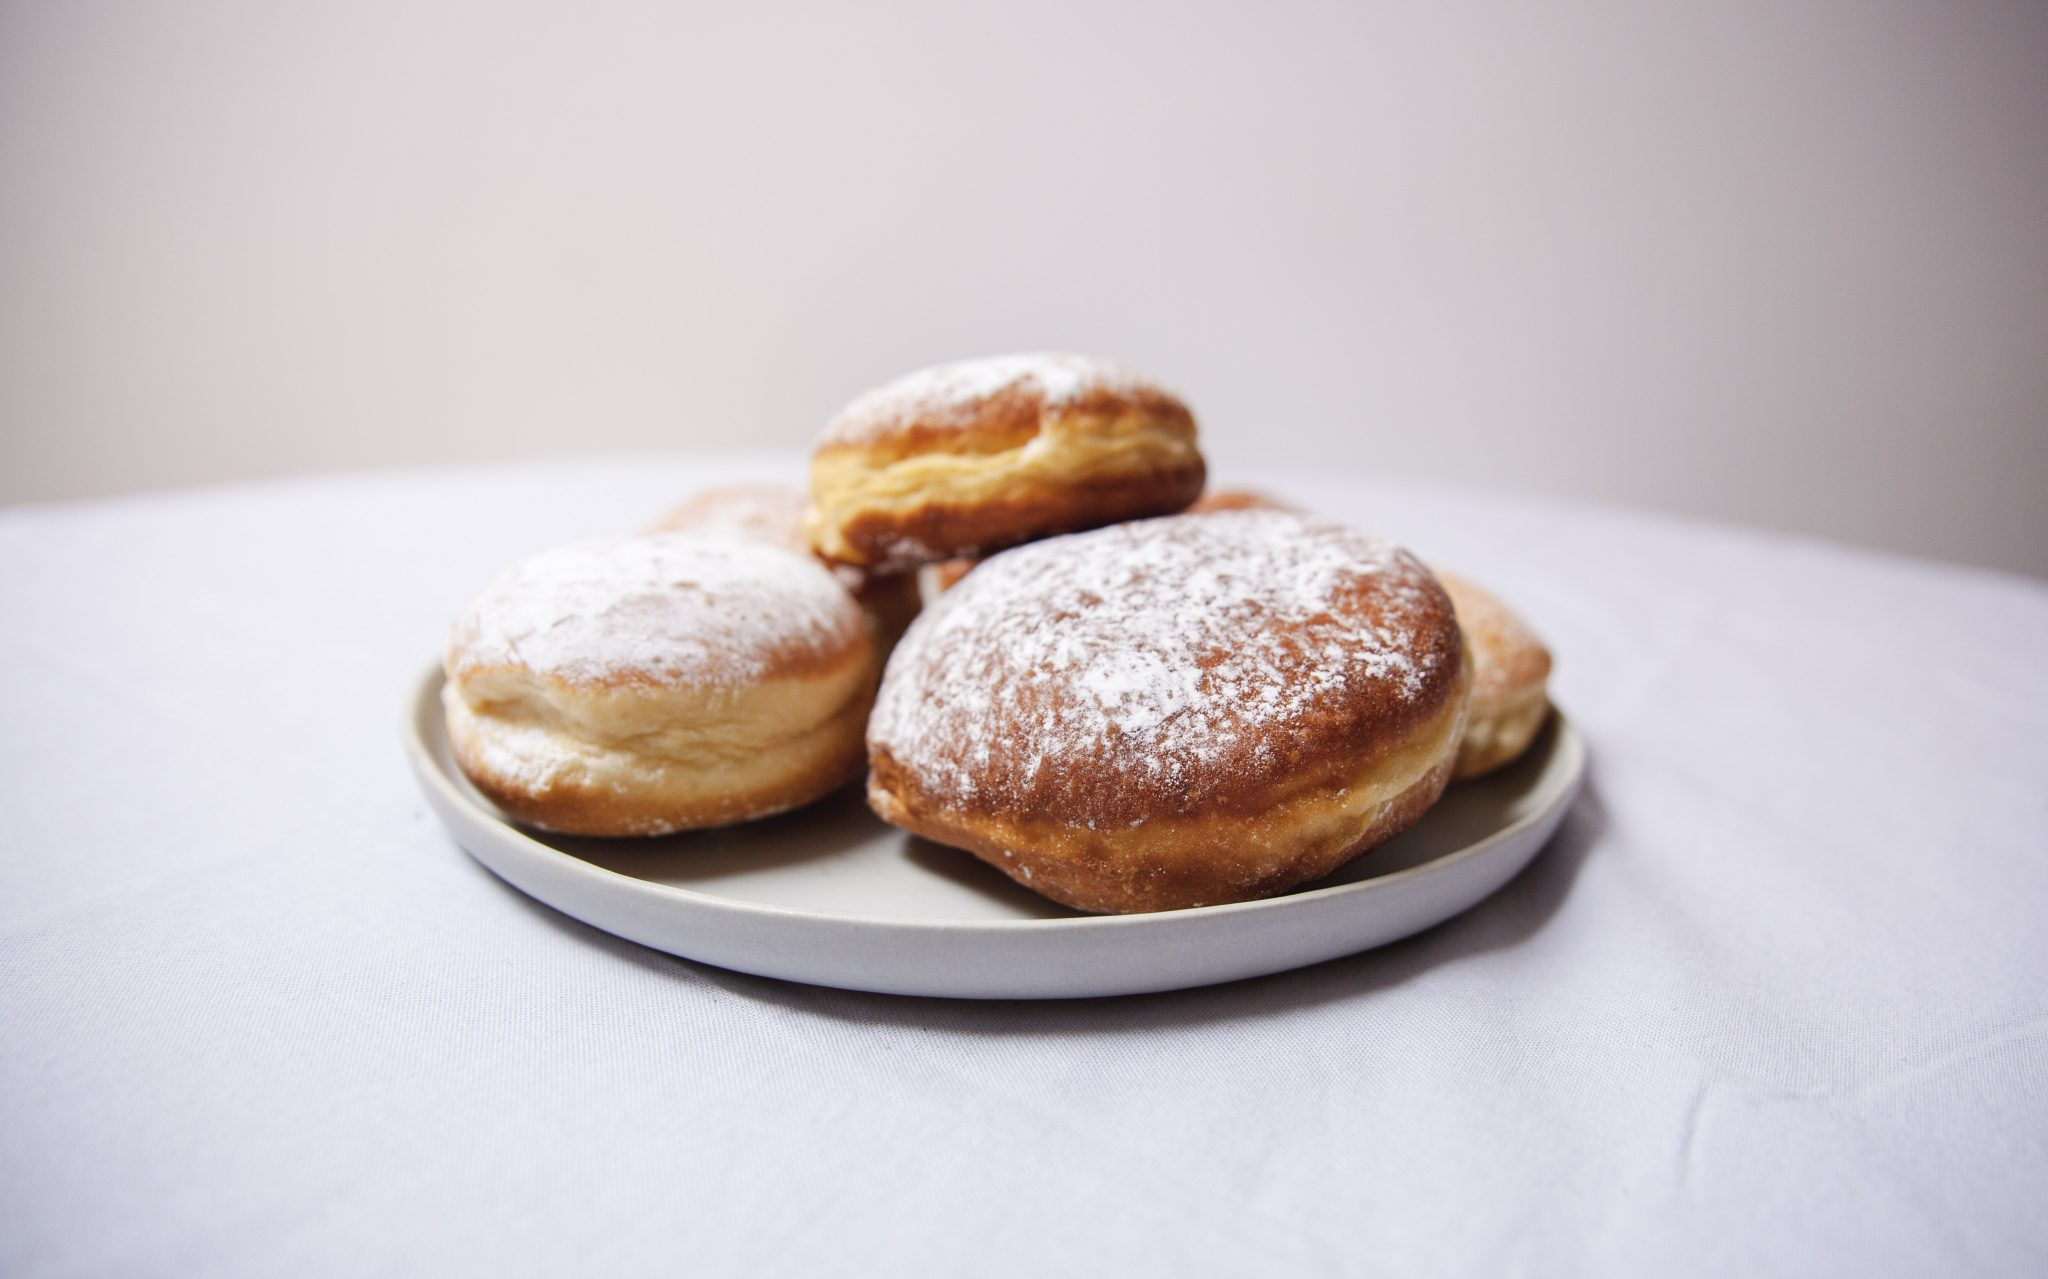 doughnuts on a plate